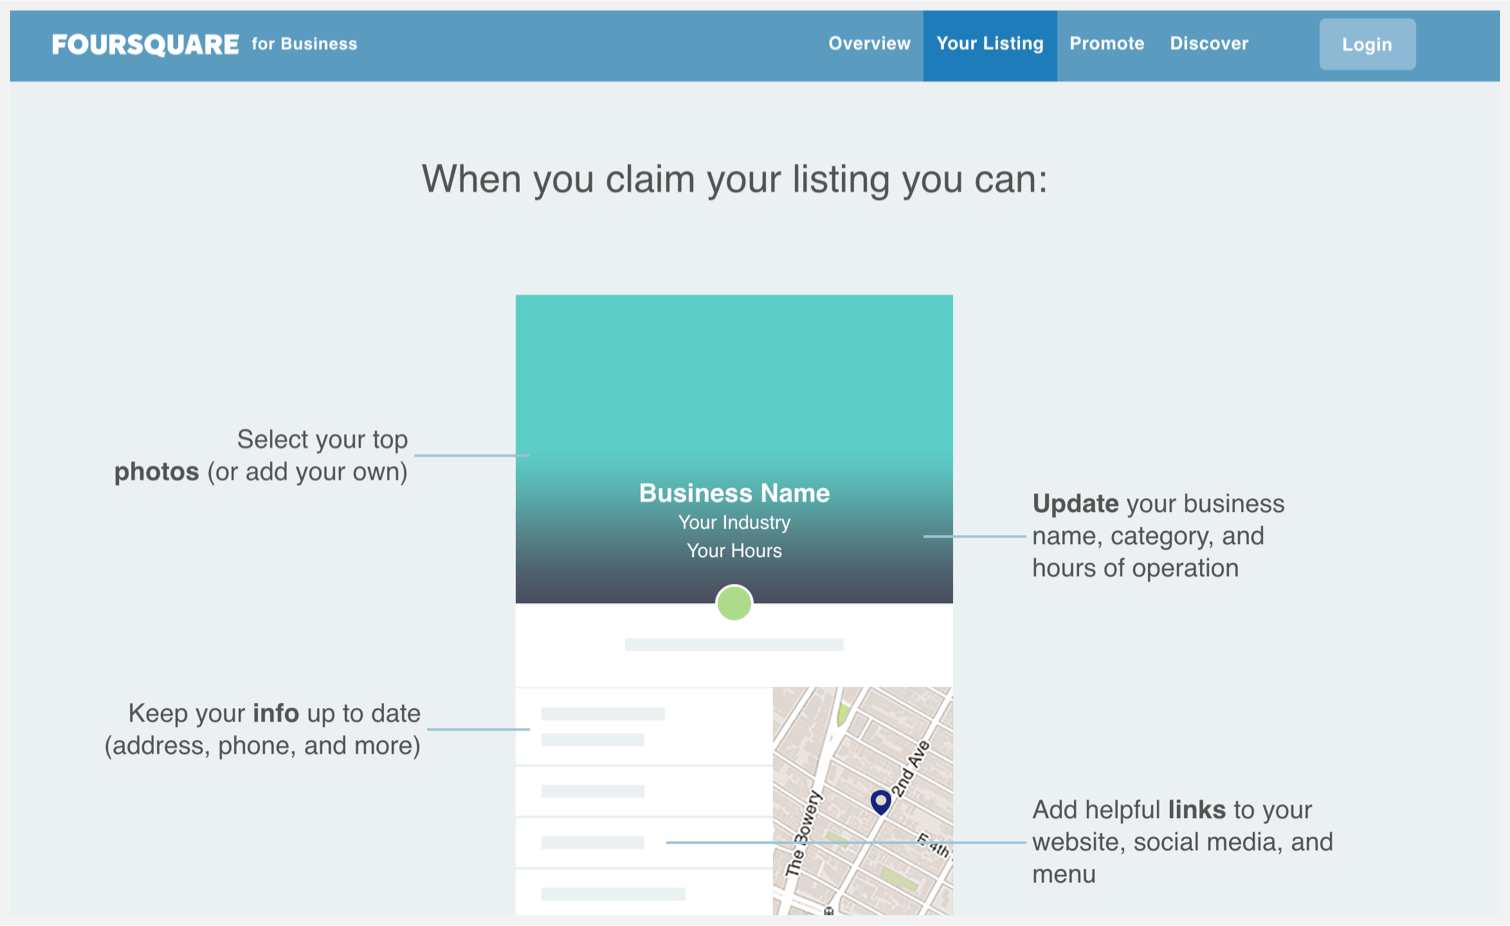 Foursquare's website, showing the benefits of claiming your listing.